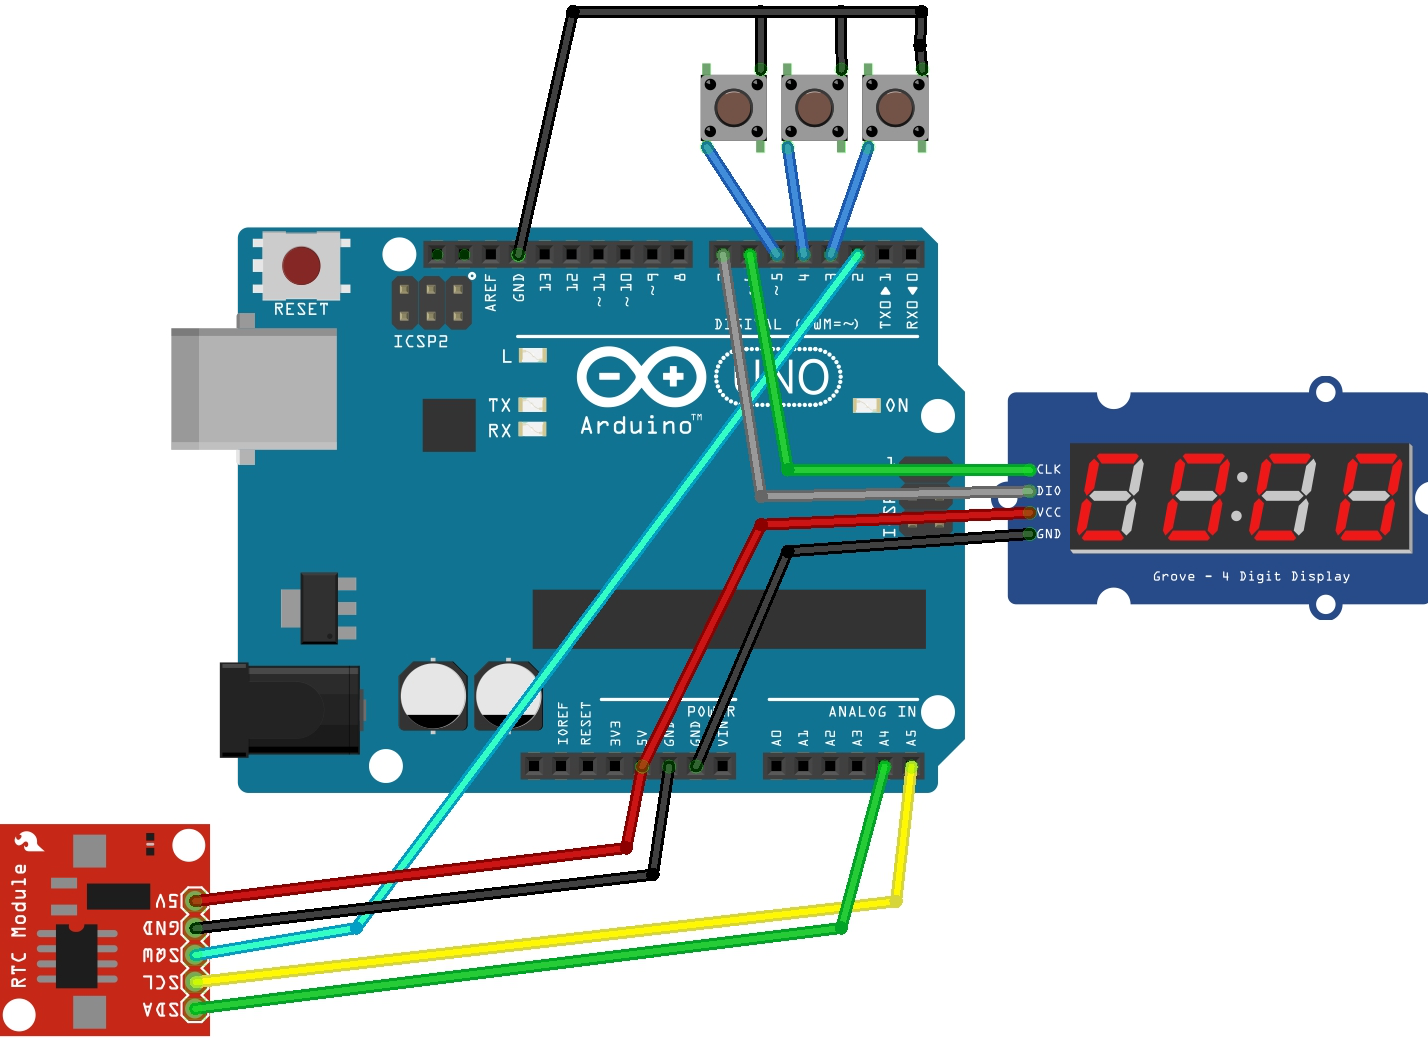 medium resolution of ds3231 real time clock rtc is a low power full binary coded decimal bcd clock calendar the clock can operate in either the 24 hour or 12 hour format